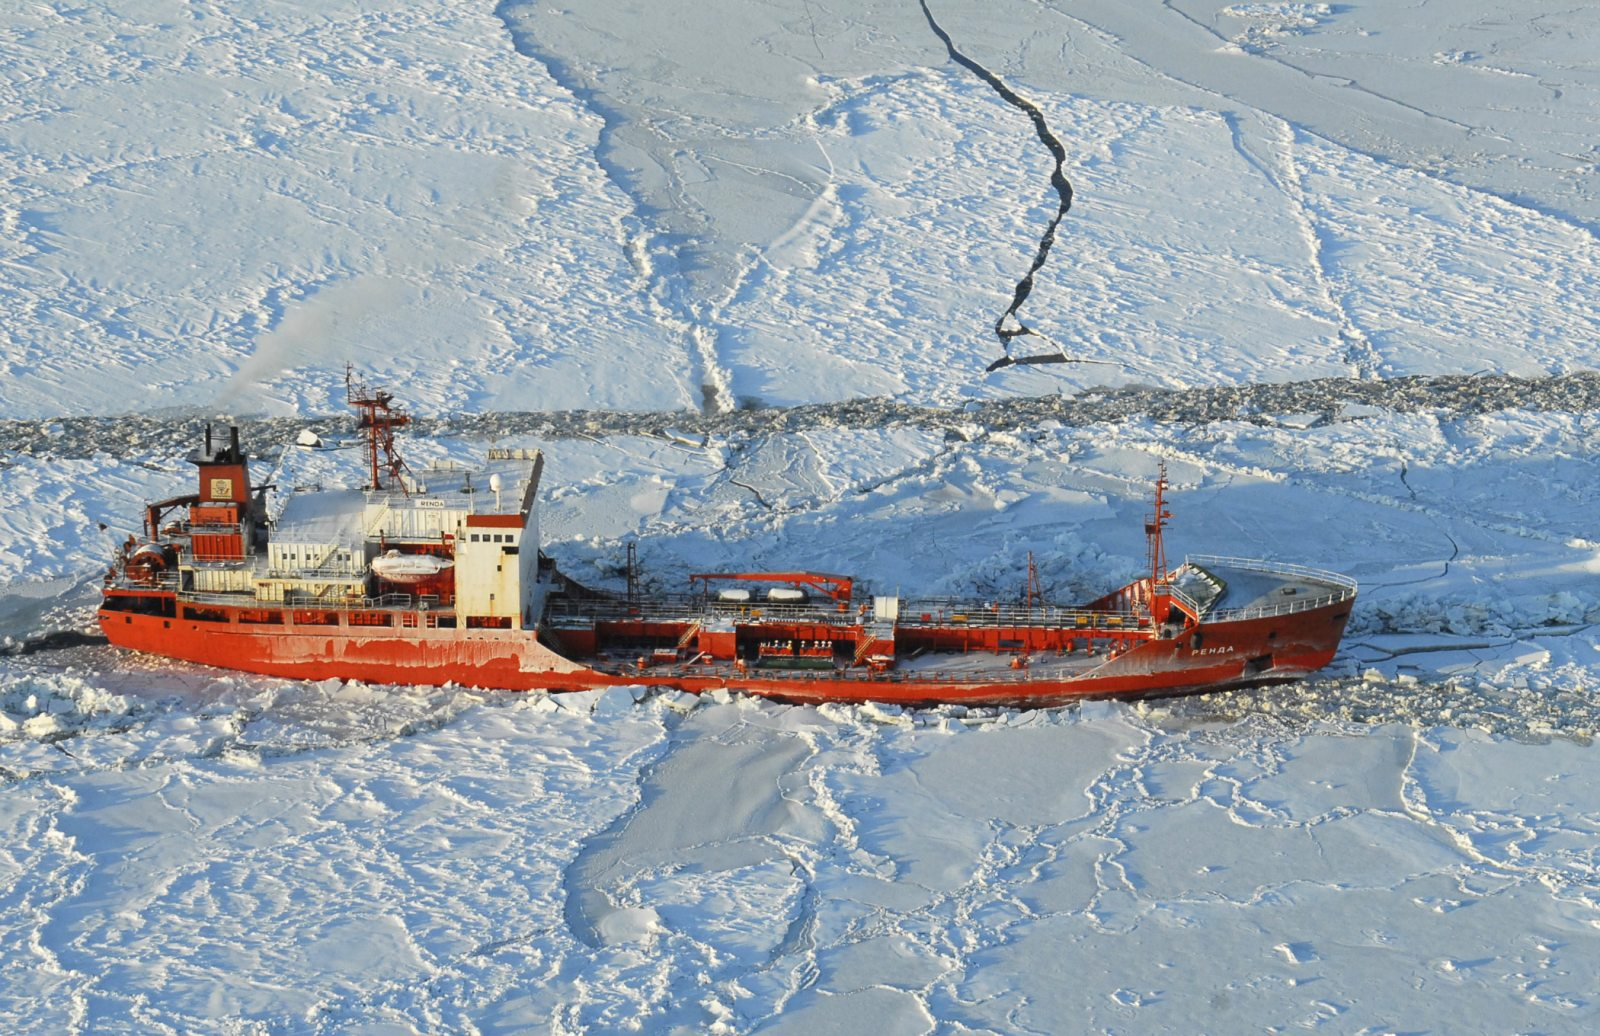 The Russian-flagged tanker vessel Renda 250 miles south of Nome, Alaska. Photo: Petty Officer 1st Class Sara Francis.